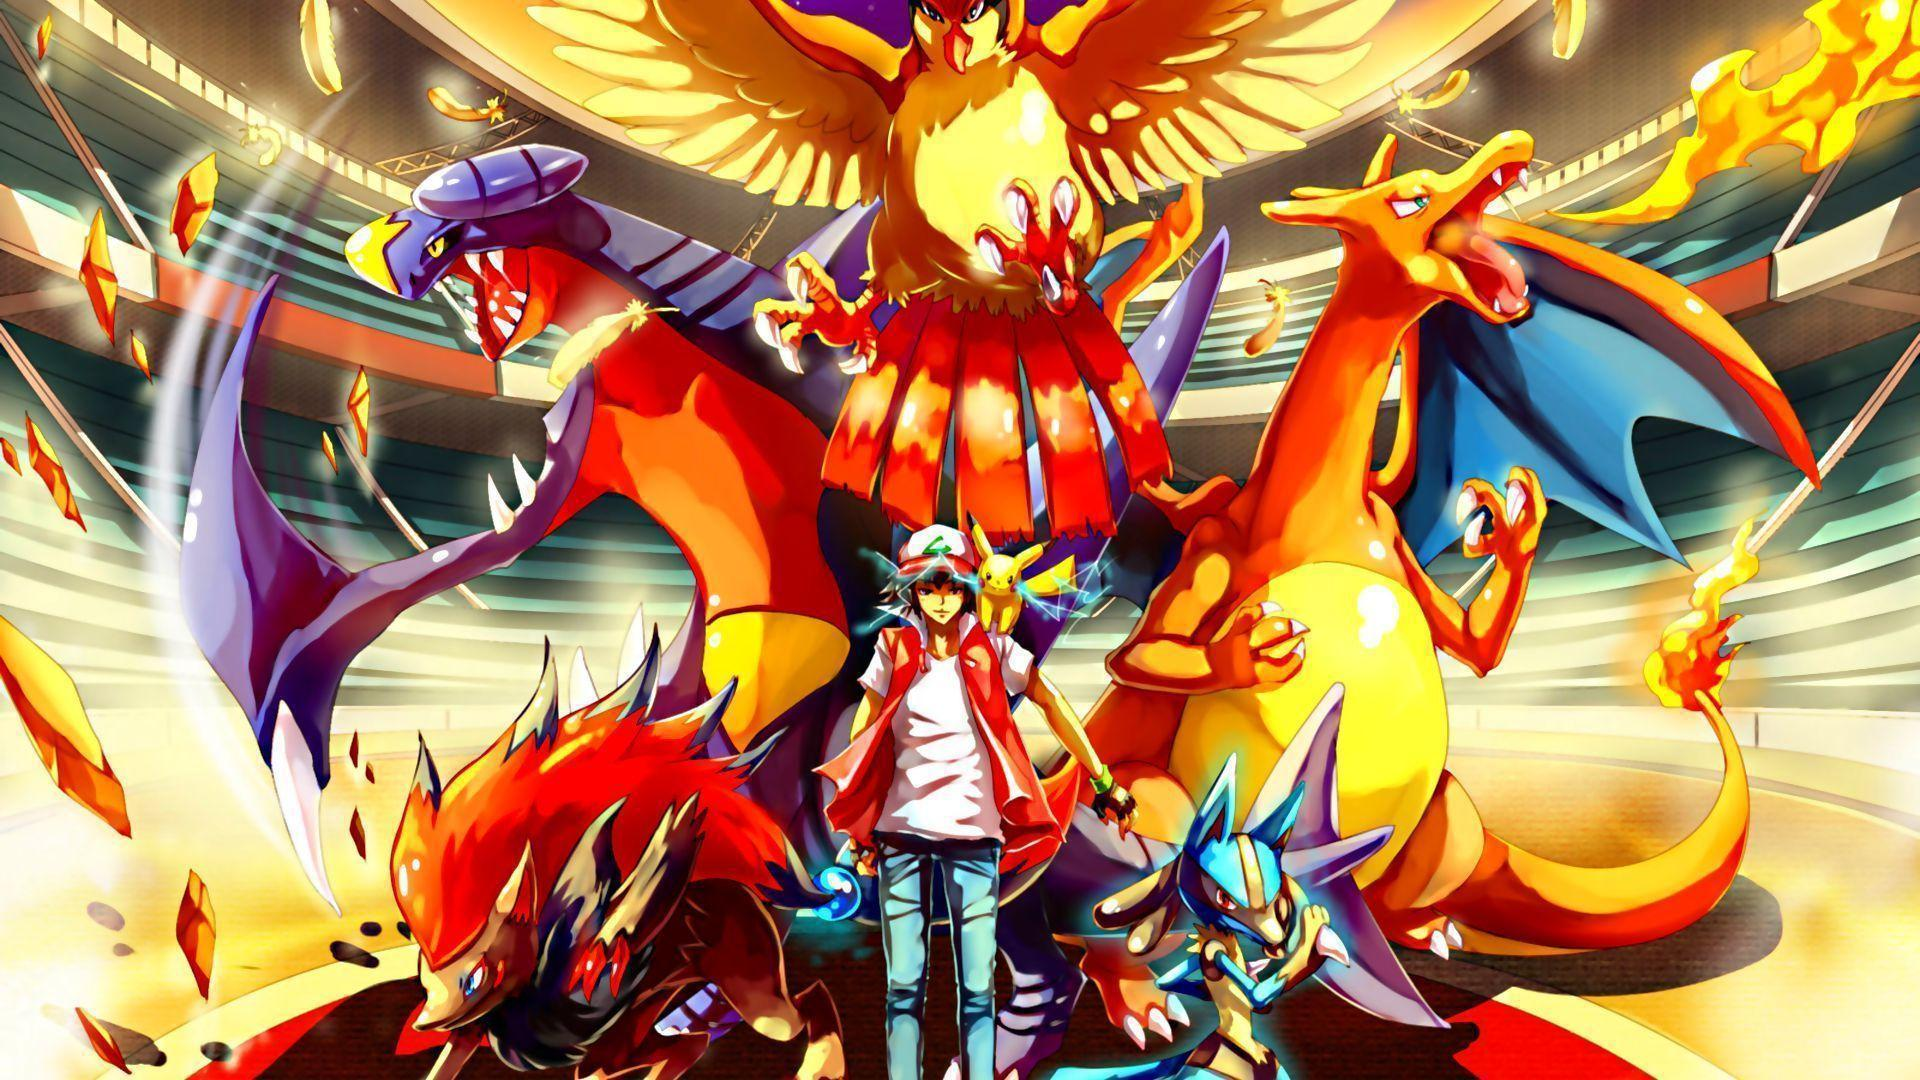 Awesome Pokemon Backgrounds 1920x1080